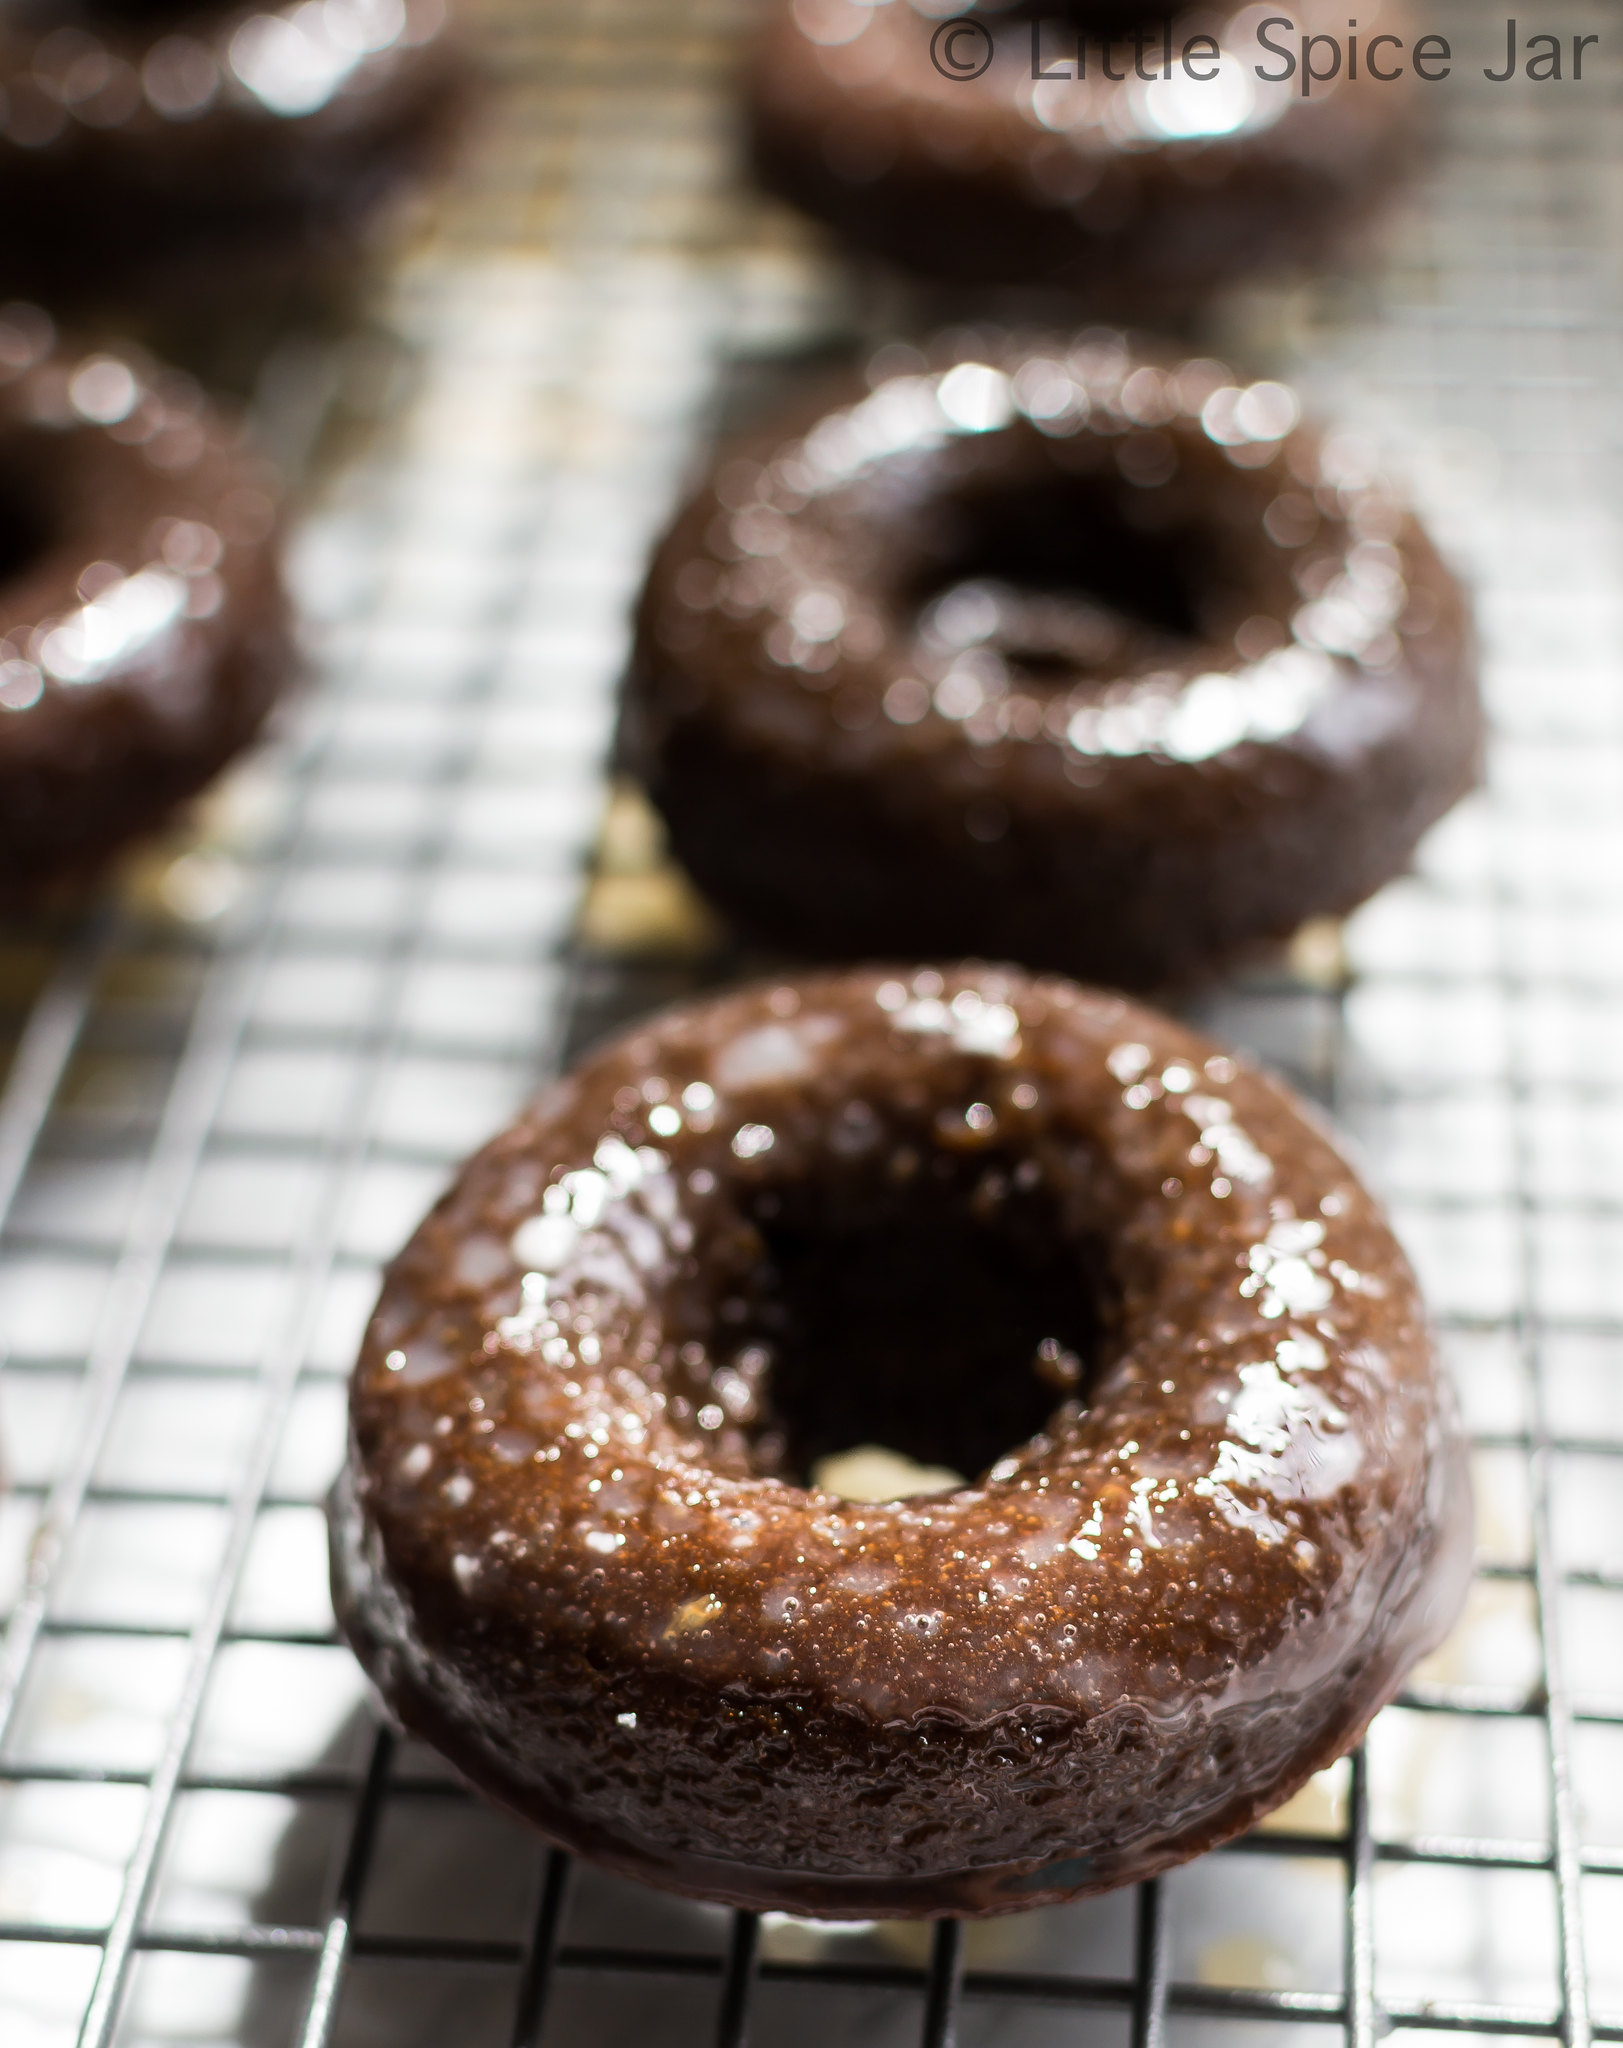 Baked Chocolate Glazed Donuts Donuts on Baking Rack 2